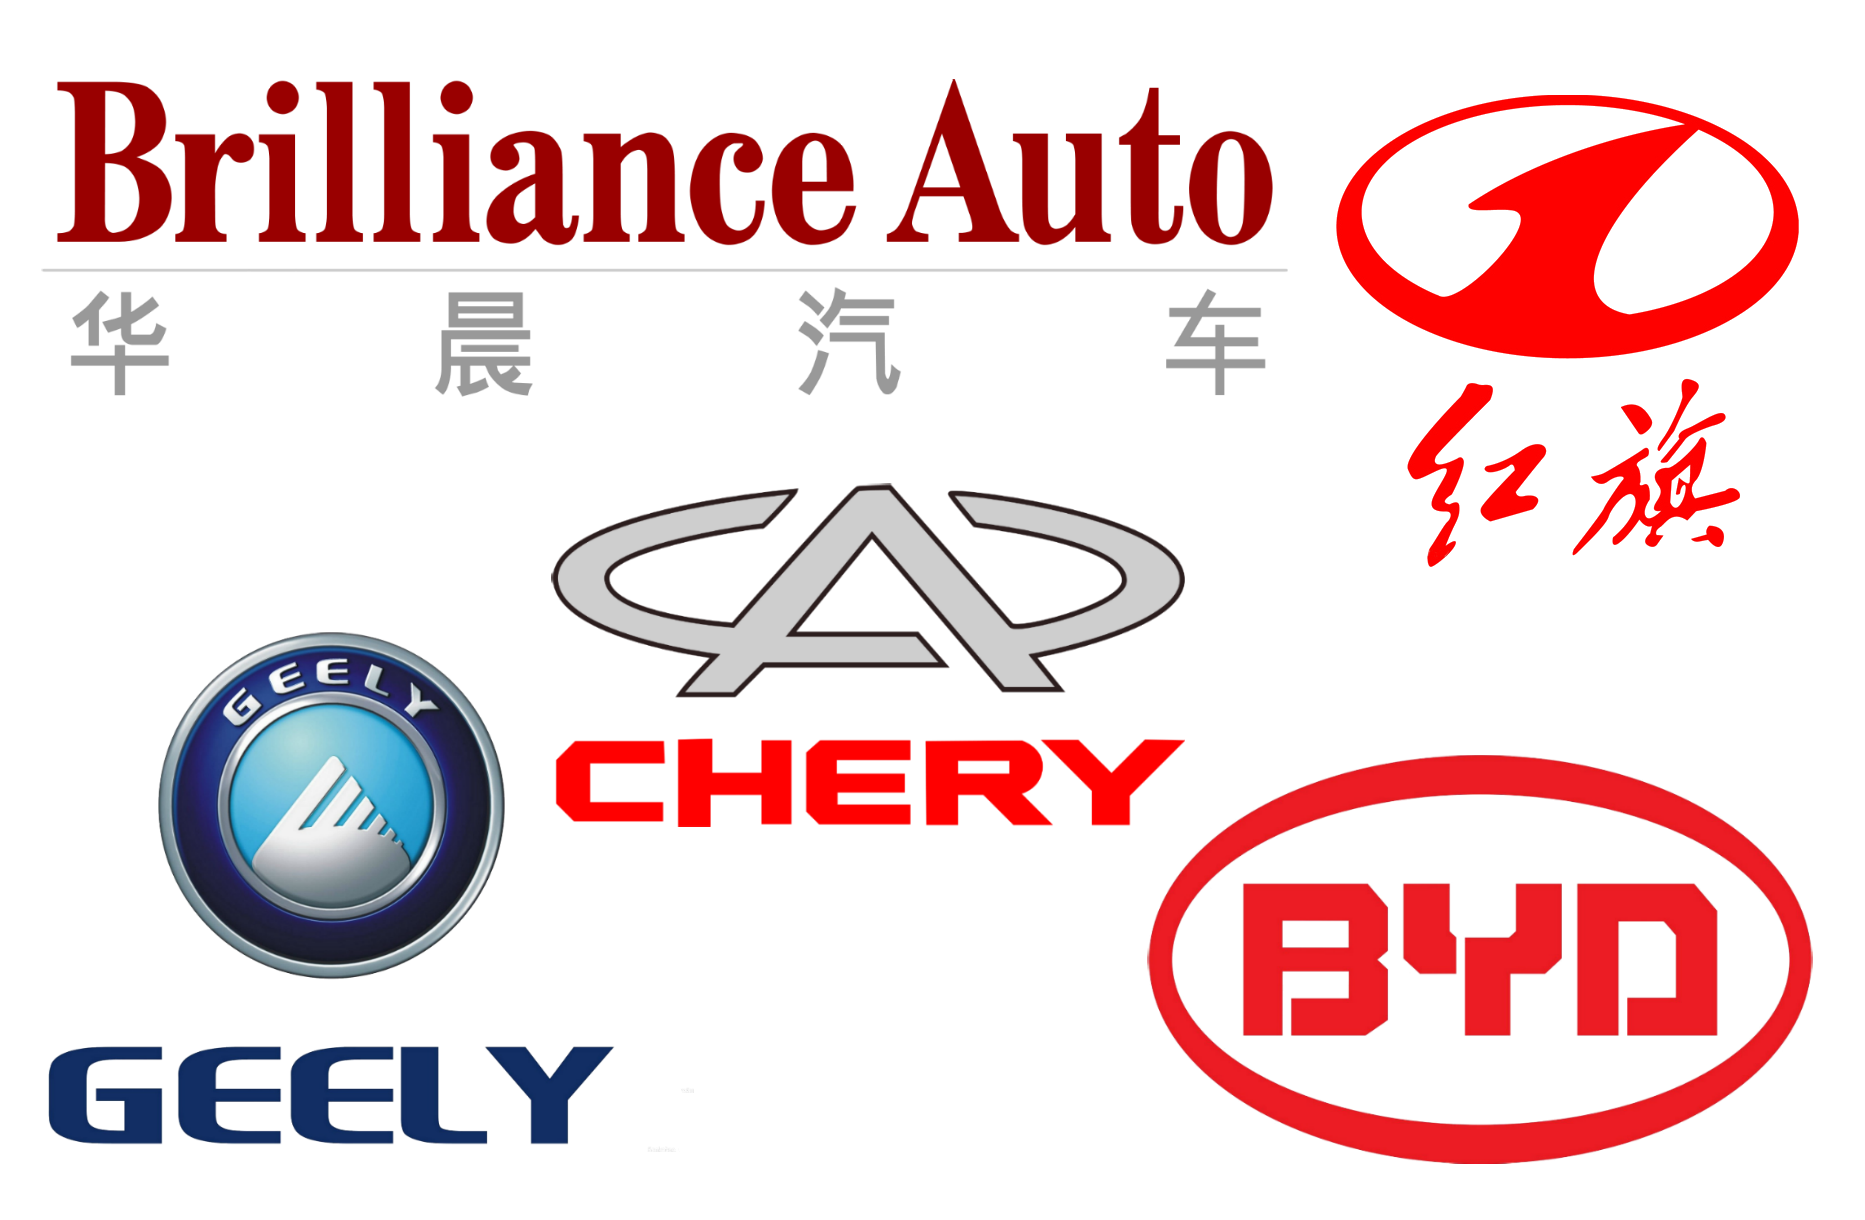 Chinese Car Brands Companies And Manufacturers Car